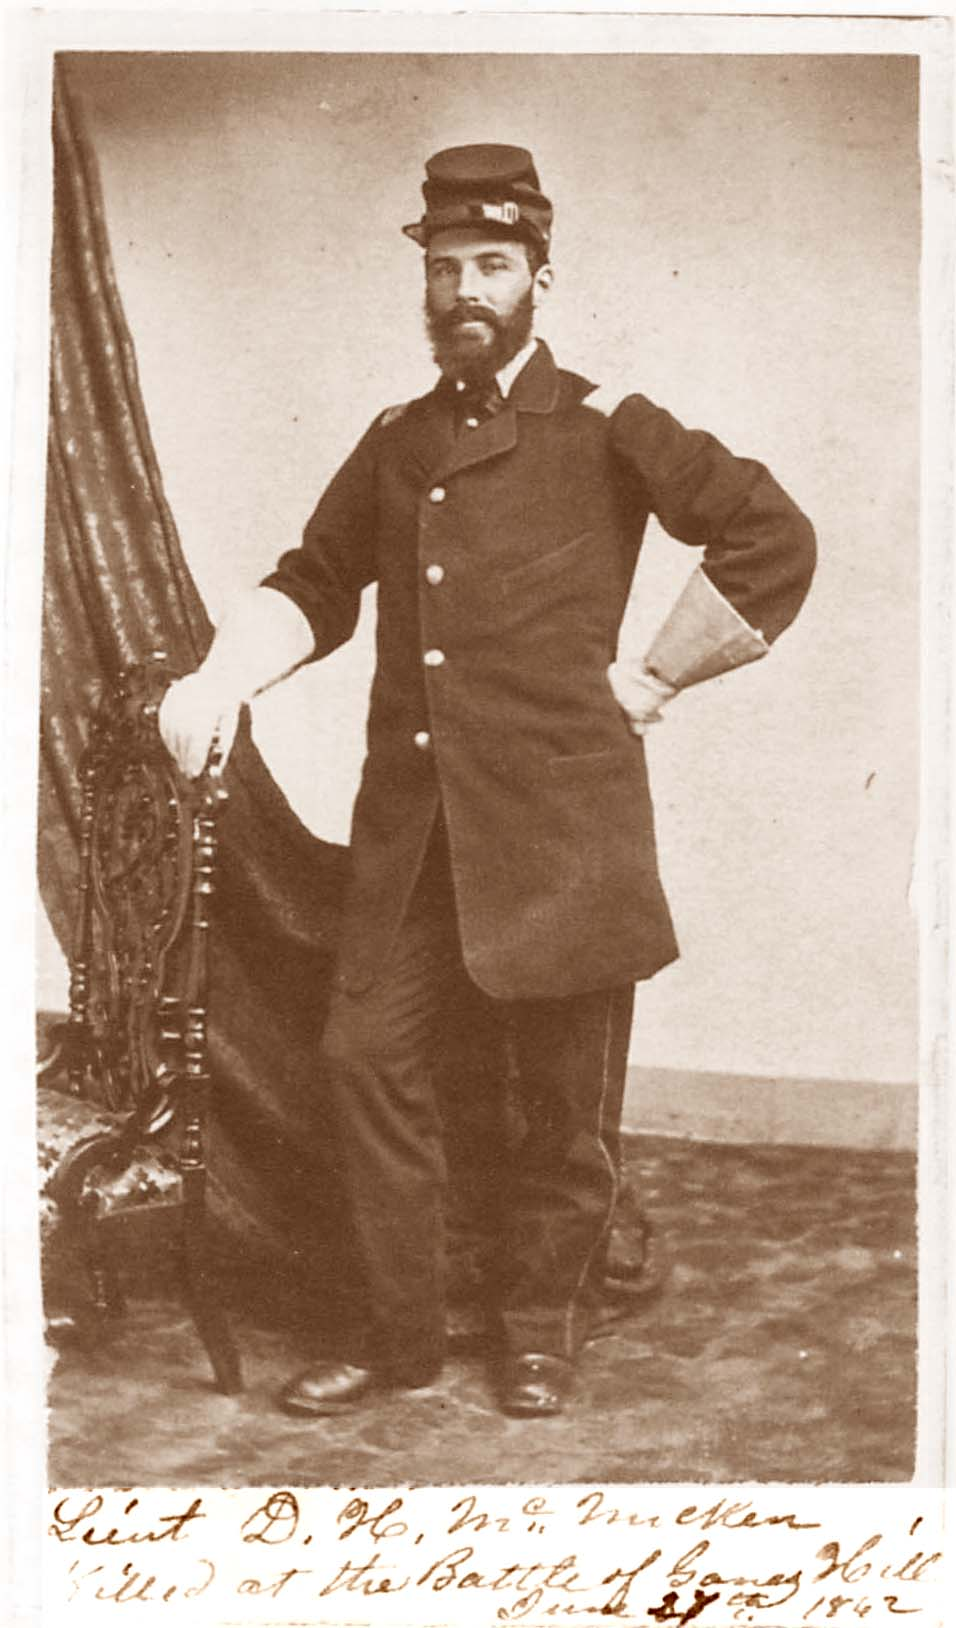 Lt. David Hayes McMicken (Courtesy of Ronald Coddington's Faces of the Civil War)